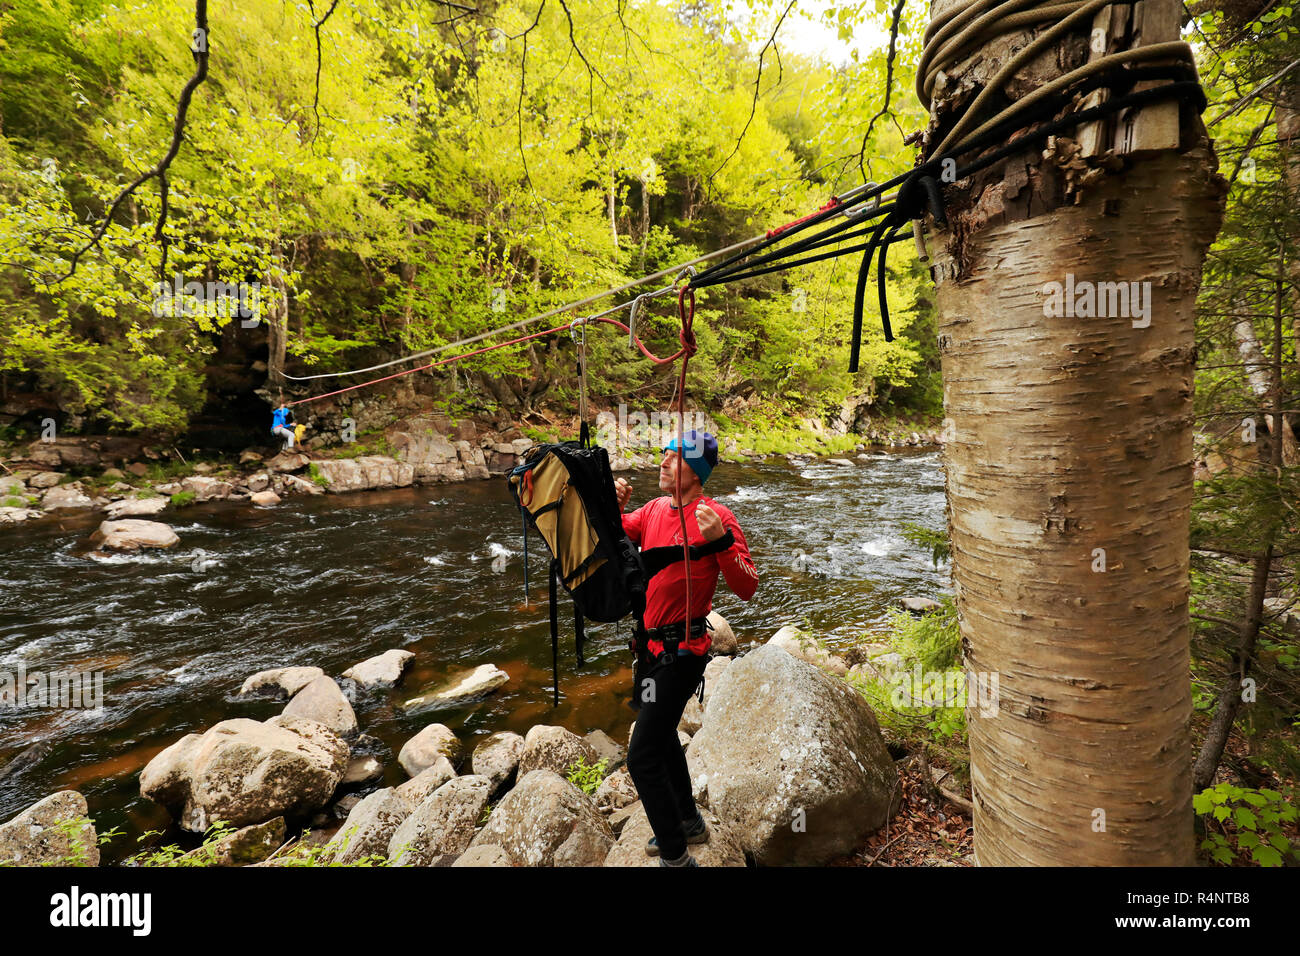 Climber traversing across the Au Sable River to access the climbing a route on Moss Cliff above Wilmington Notch, Adirondack Mountains, New York State, USA - Stock Image